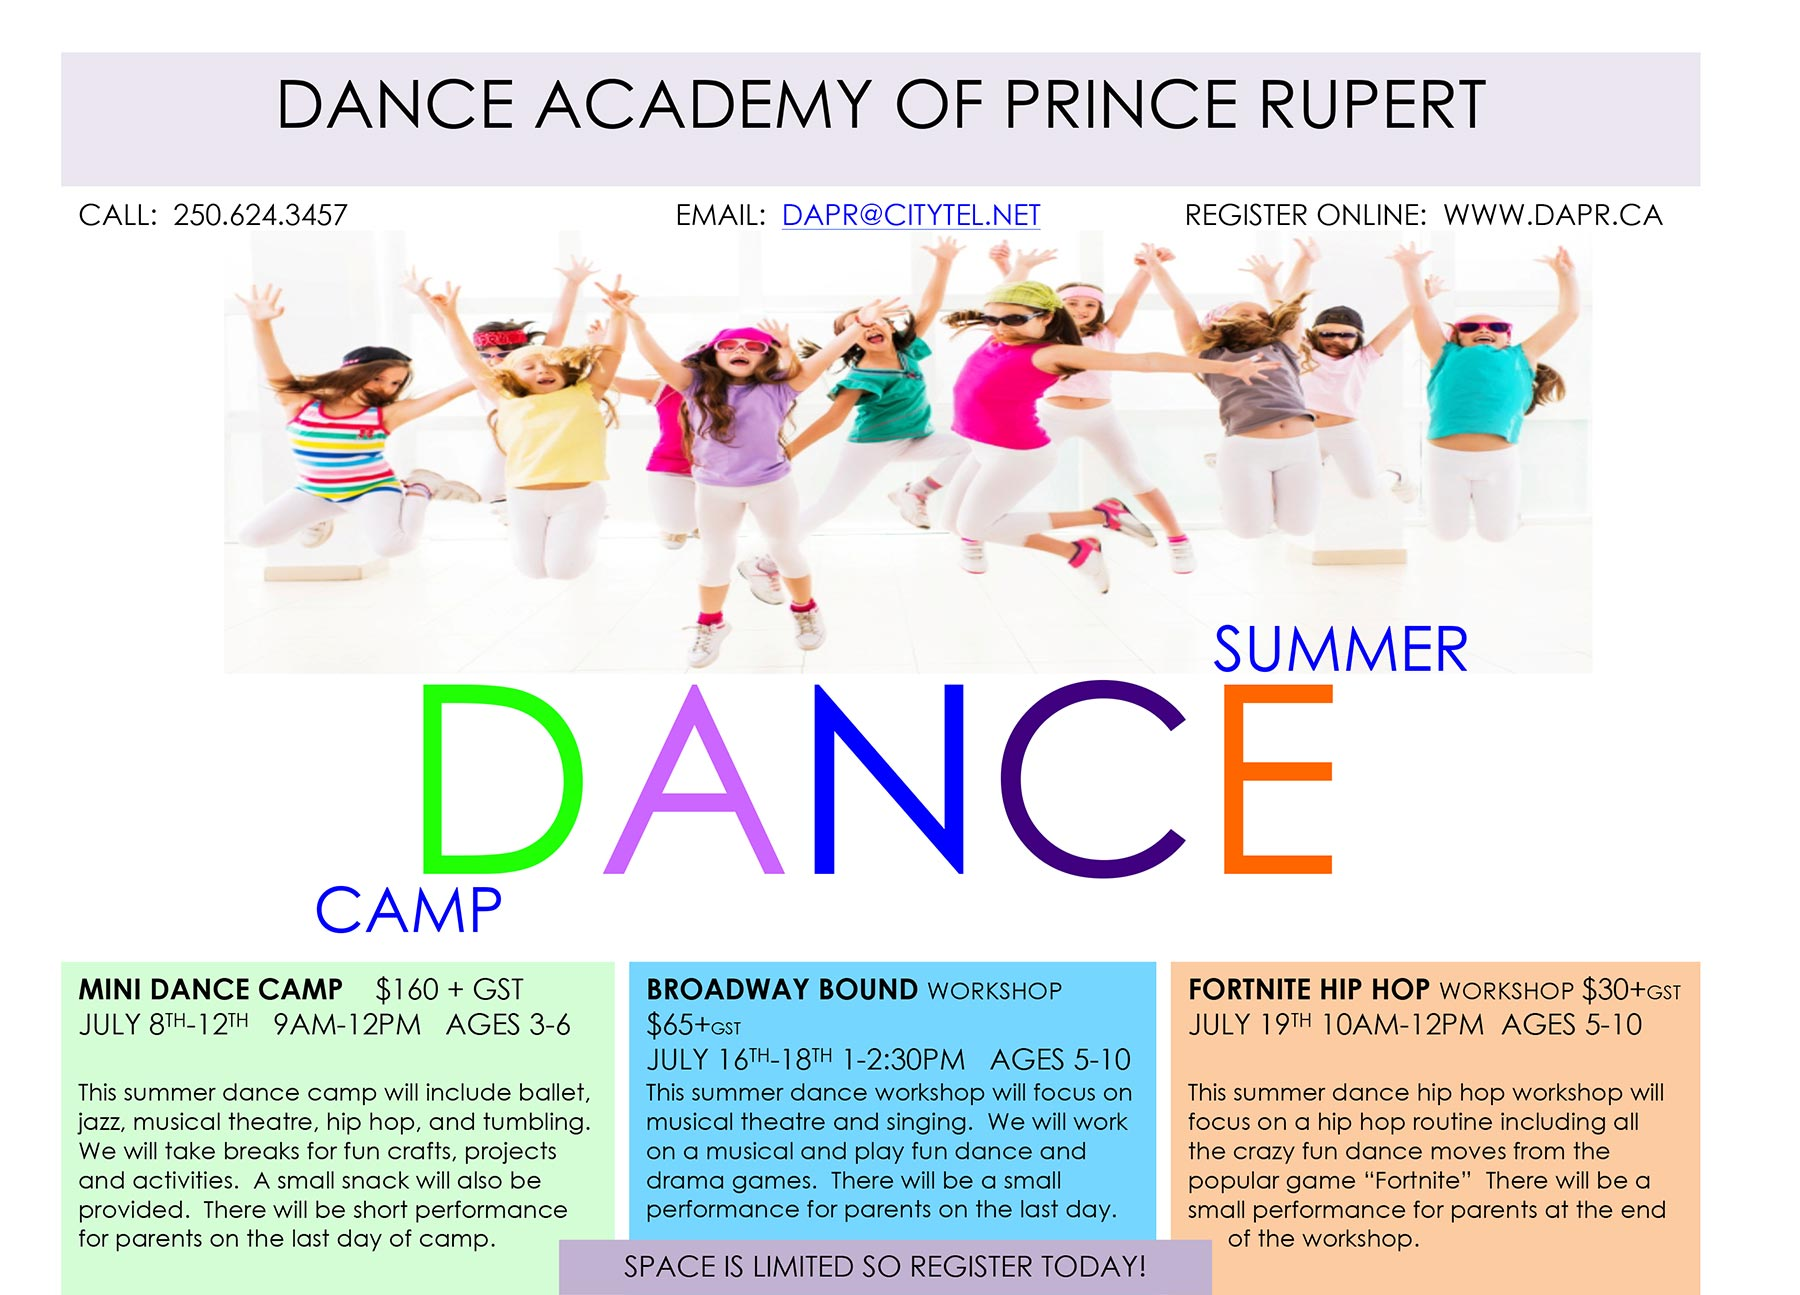 DAPR Summer Dance Camps in Prince Rupert